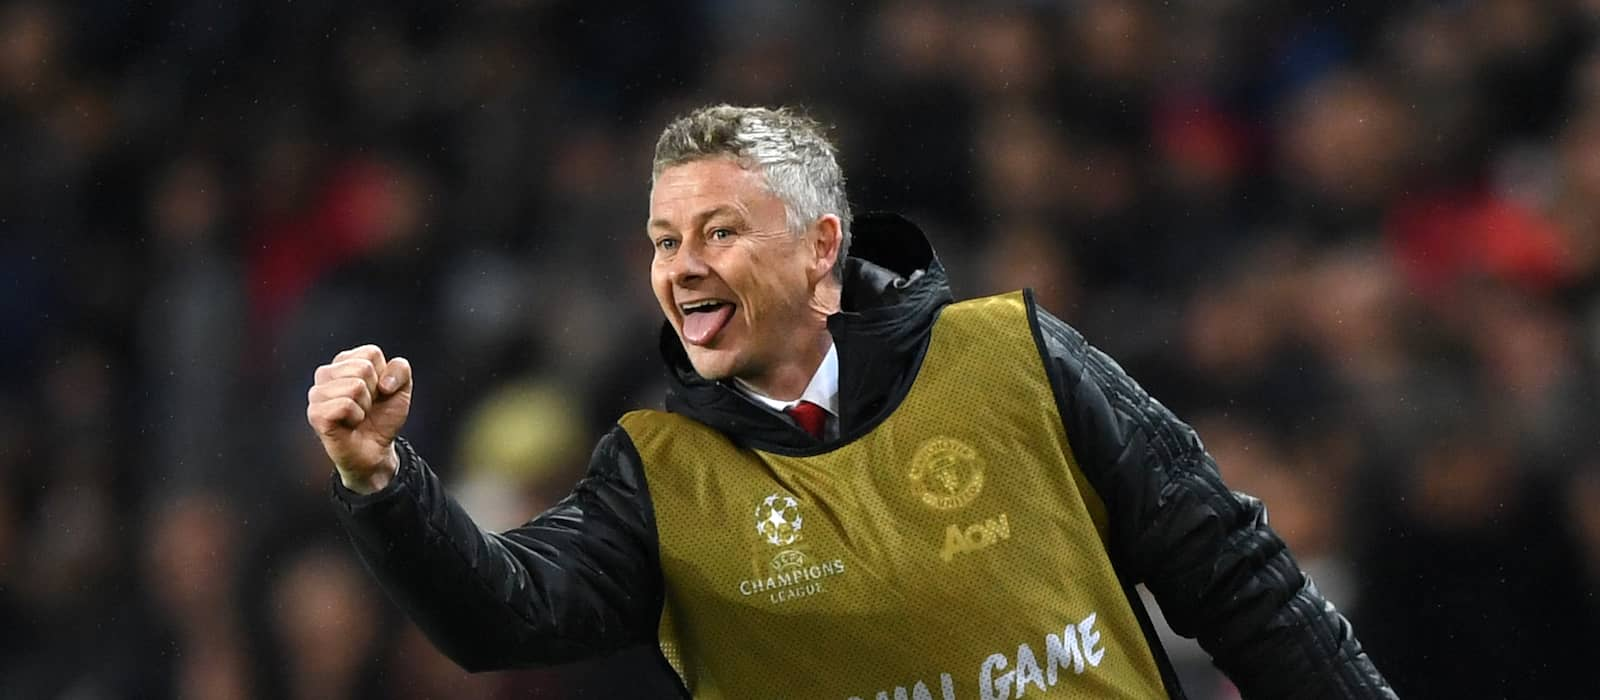 Video: Manchester United players buzzing after historic win over PSG